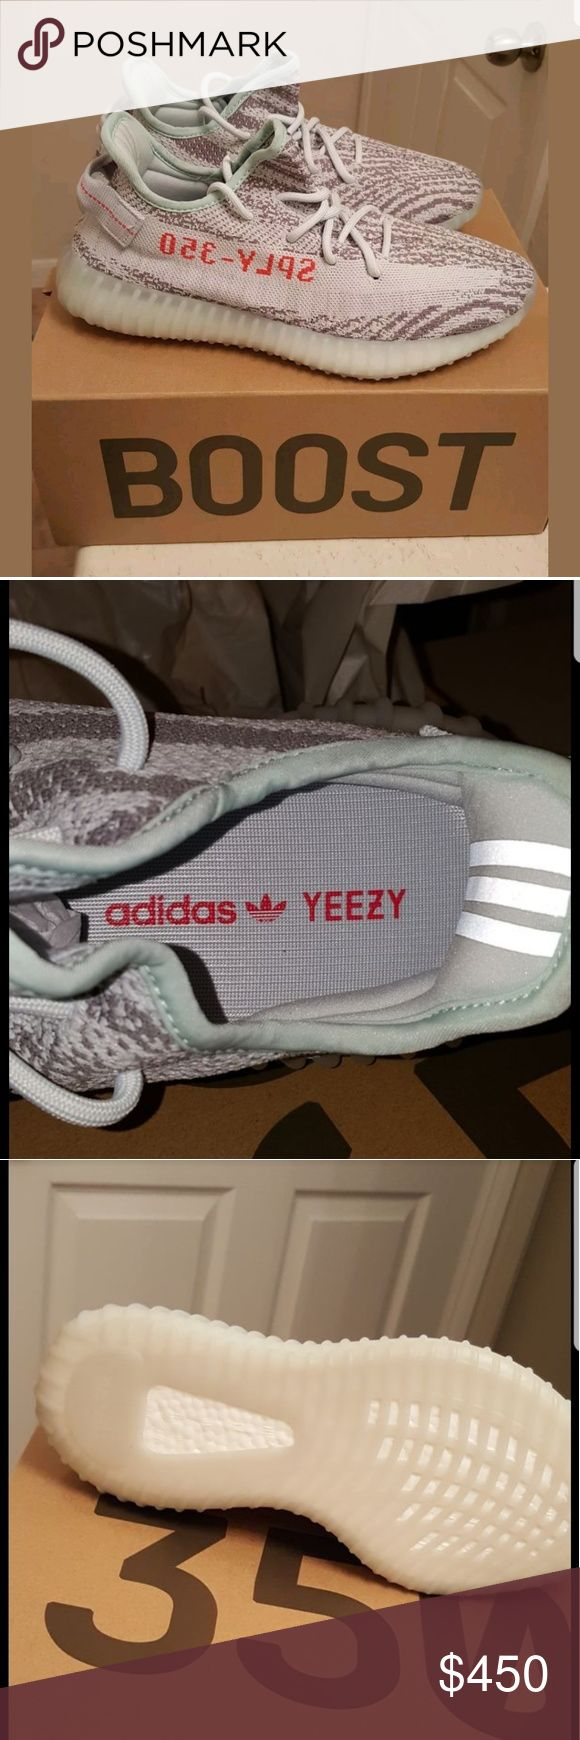 adidas yeezy boost release locations property adidas yeezy boost low